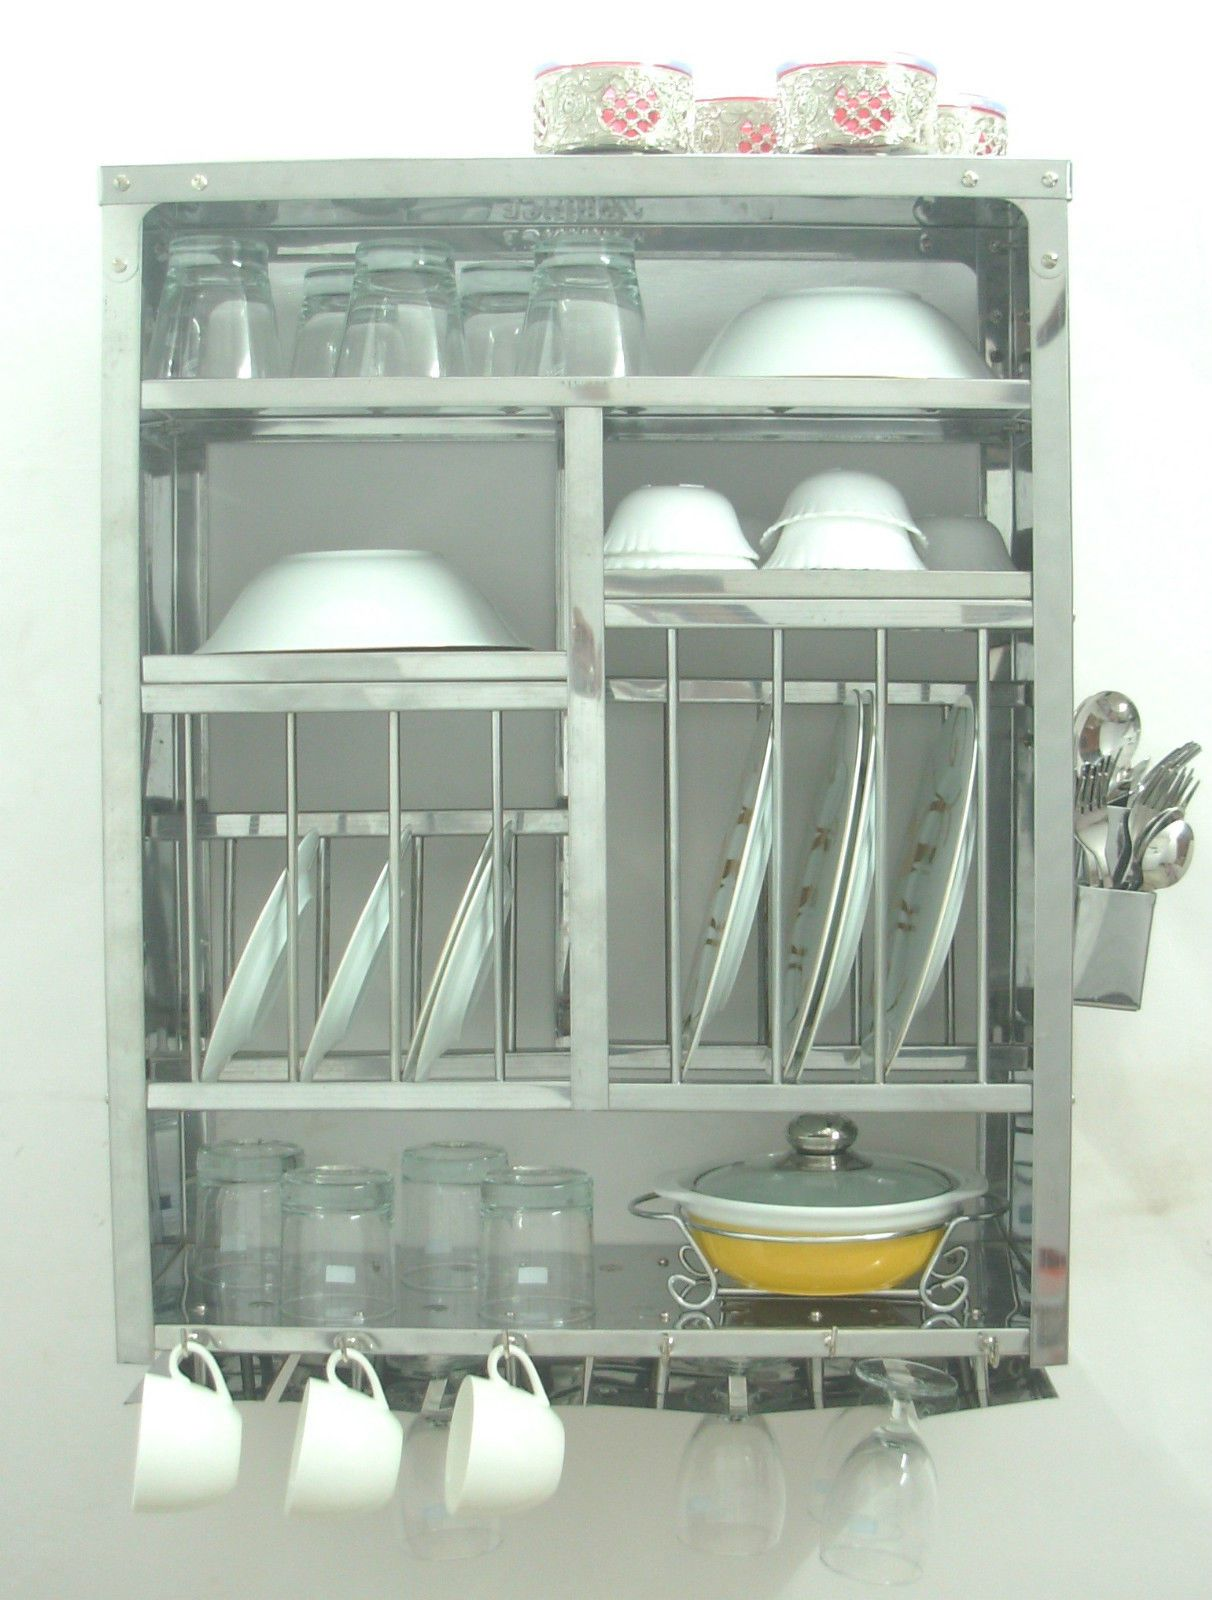 Huge Stainless Steel Industrial Shelves Make Great Display Storage If You Have A Big Empty Wall Open Pantry Metal Storage Shelves Pantry Shelving